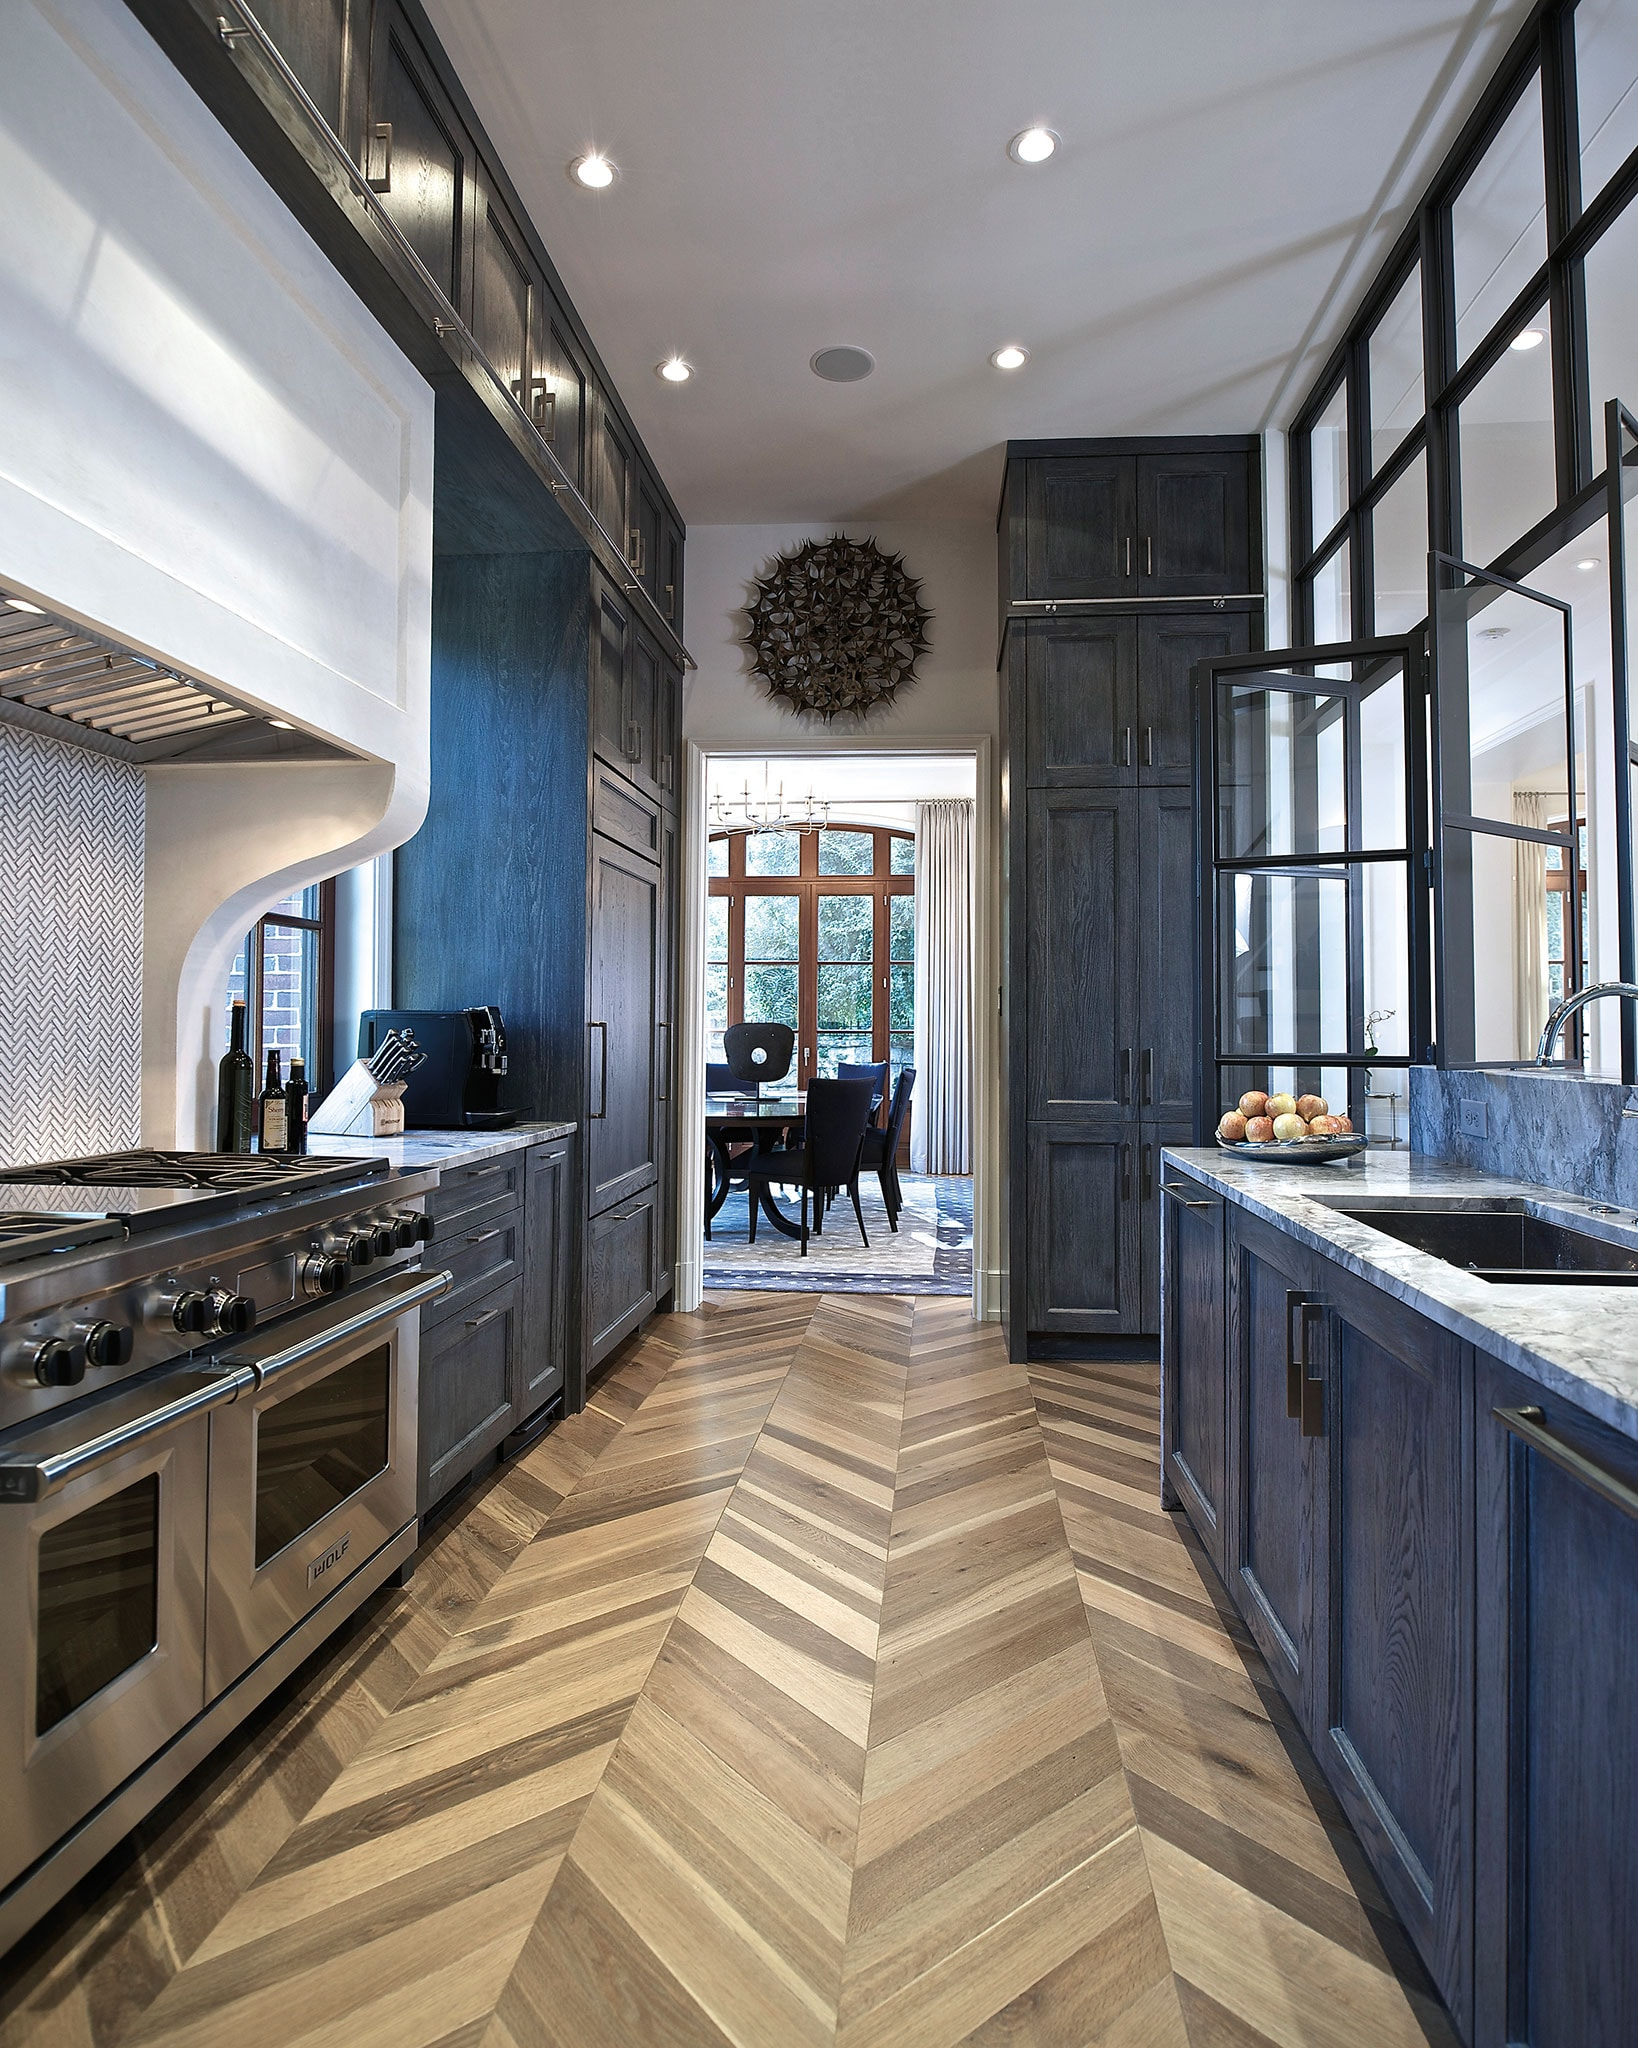 In Both Function And Design, This Atlanta Kitchen Is A True Work Of Art.